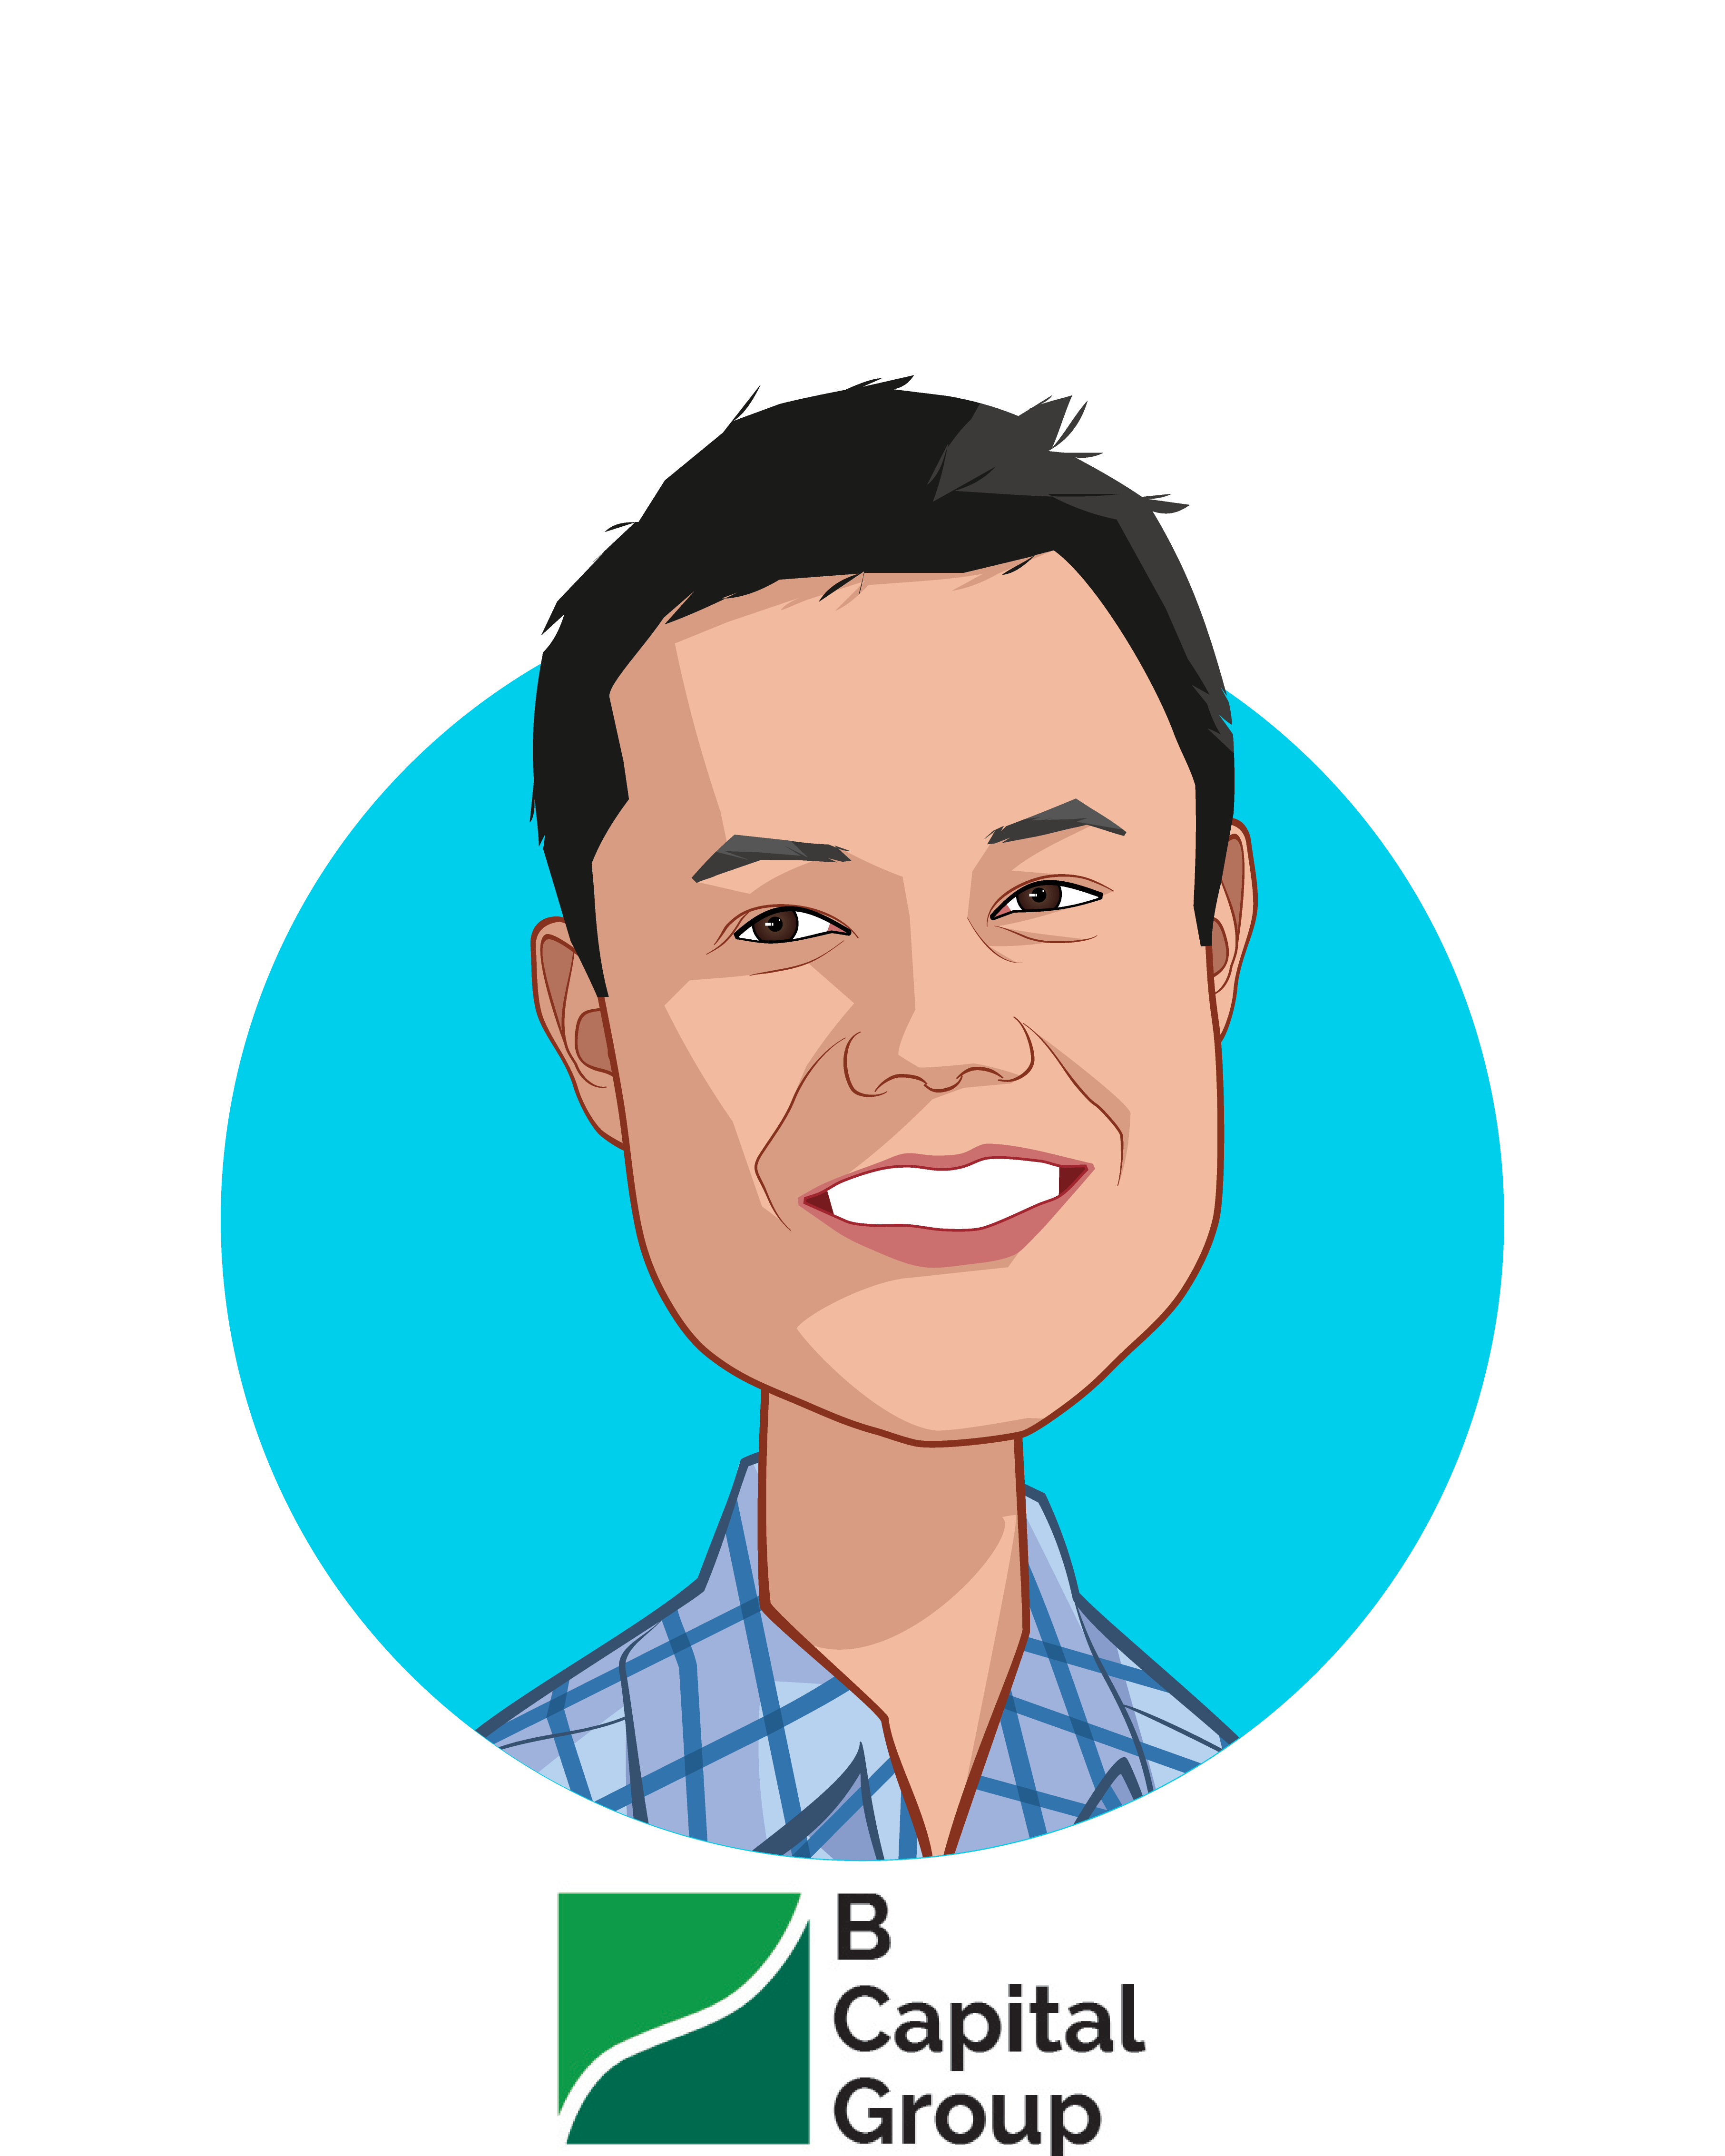 Main caricature of Gavin Teo, who is speaking at HLTH and is General Partner at B Capital Group